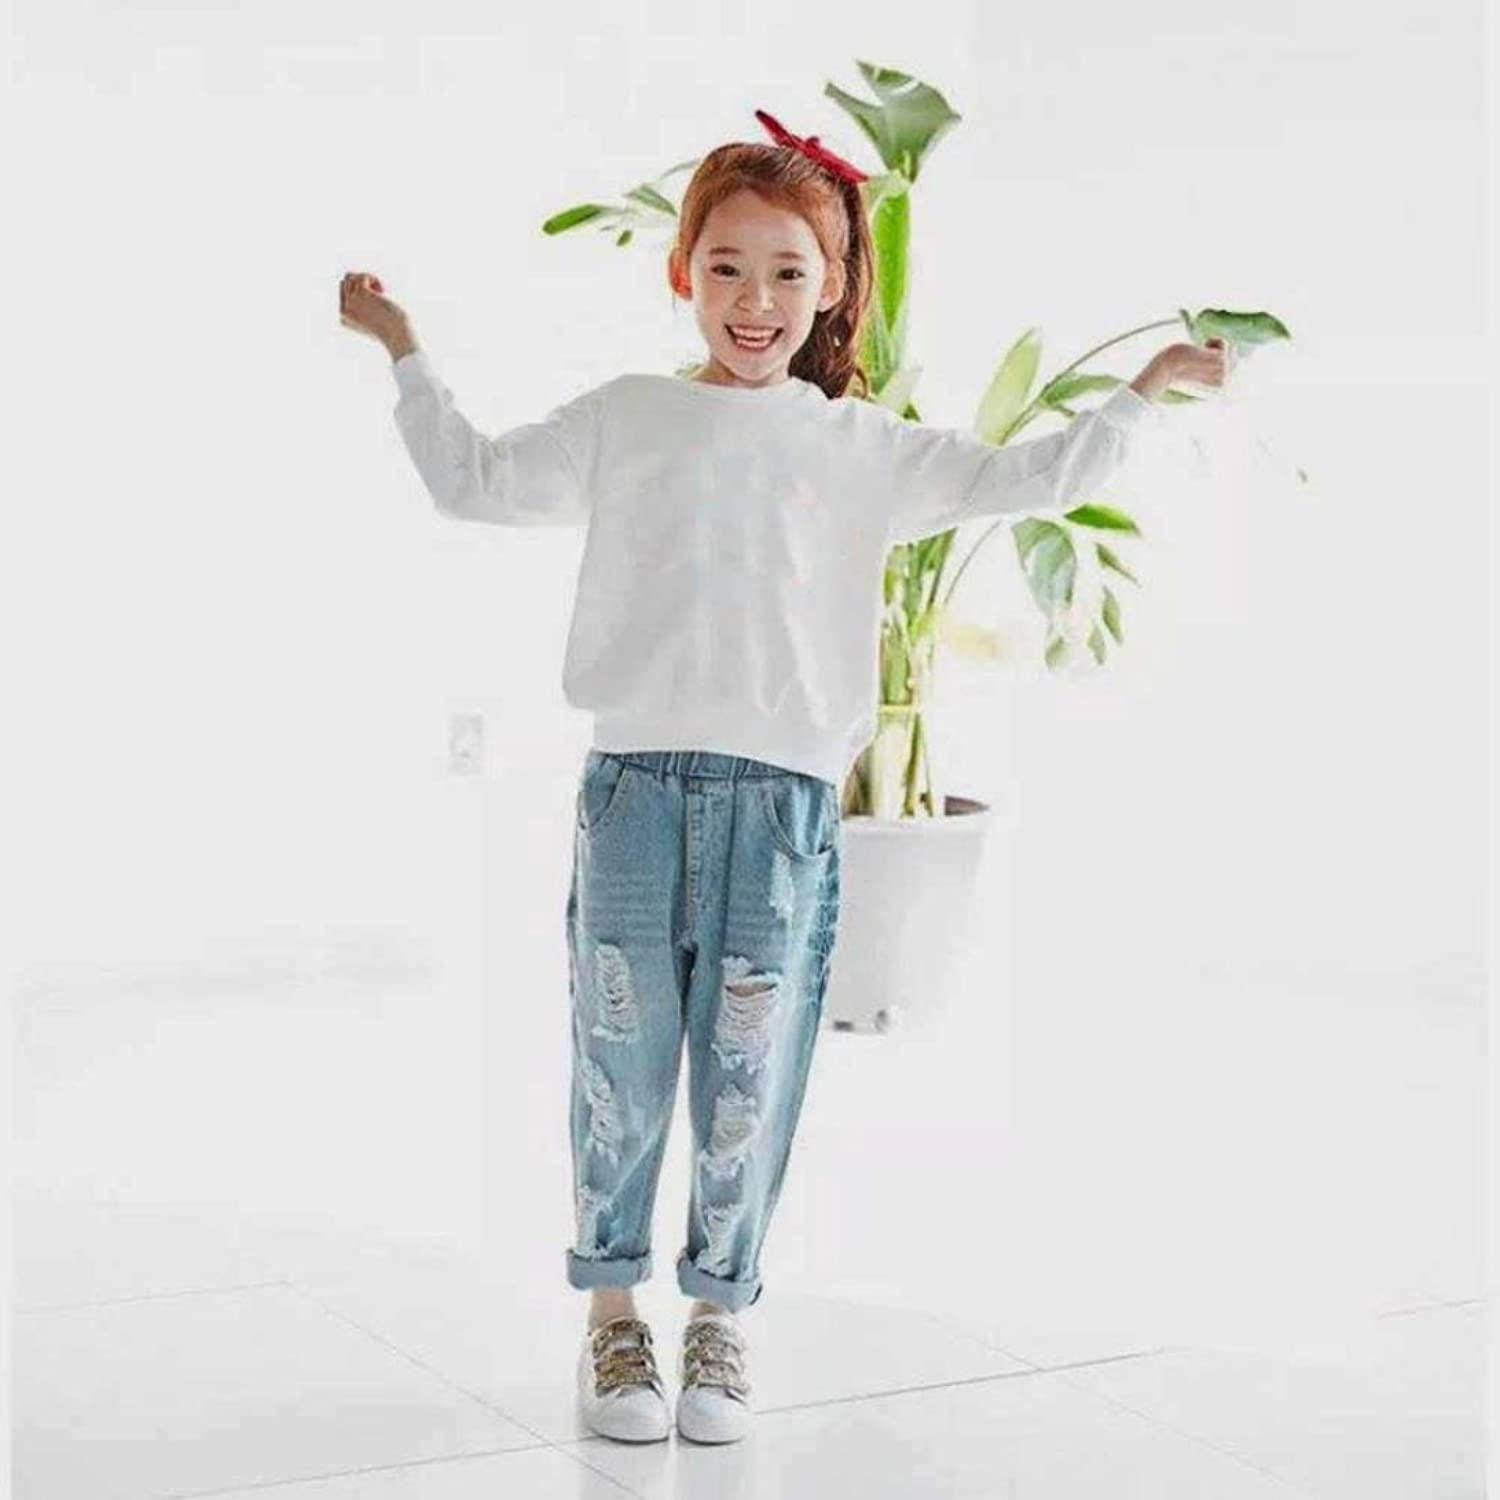 Girls Jeans, KaloryWee Toddler Kids Baby Girls Boys Stretchy Pants Trousers  Loose Ripped Denim Jeans: Amazon.co.uk: Clothing